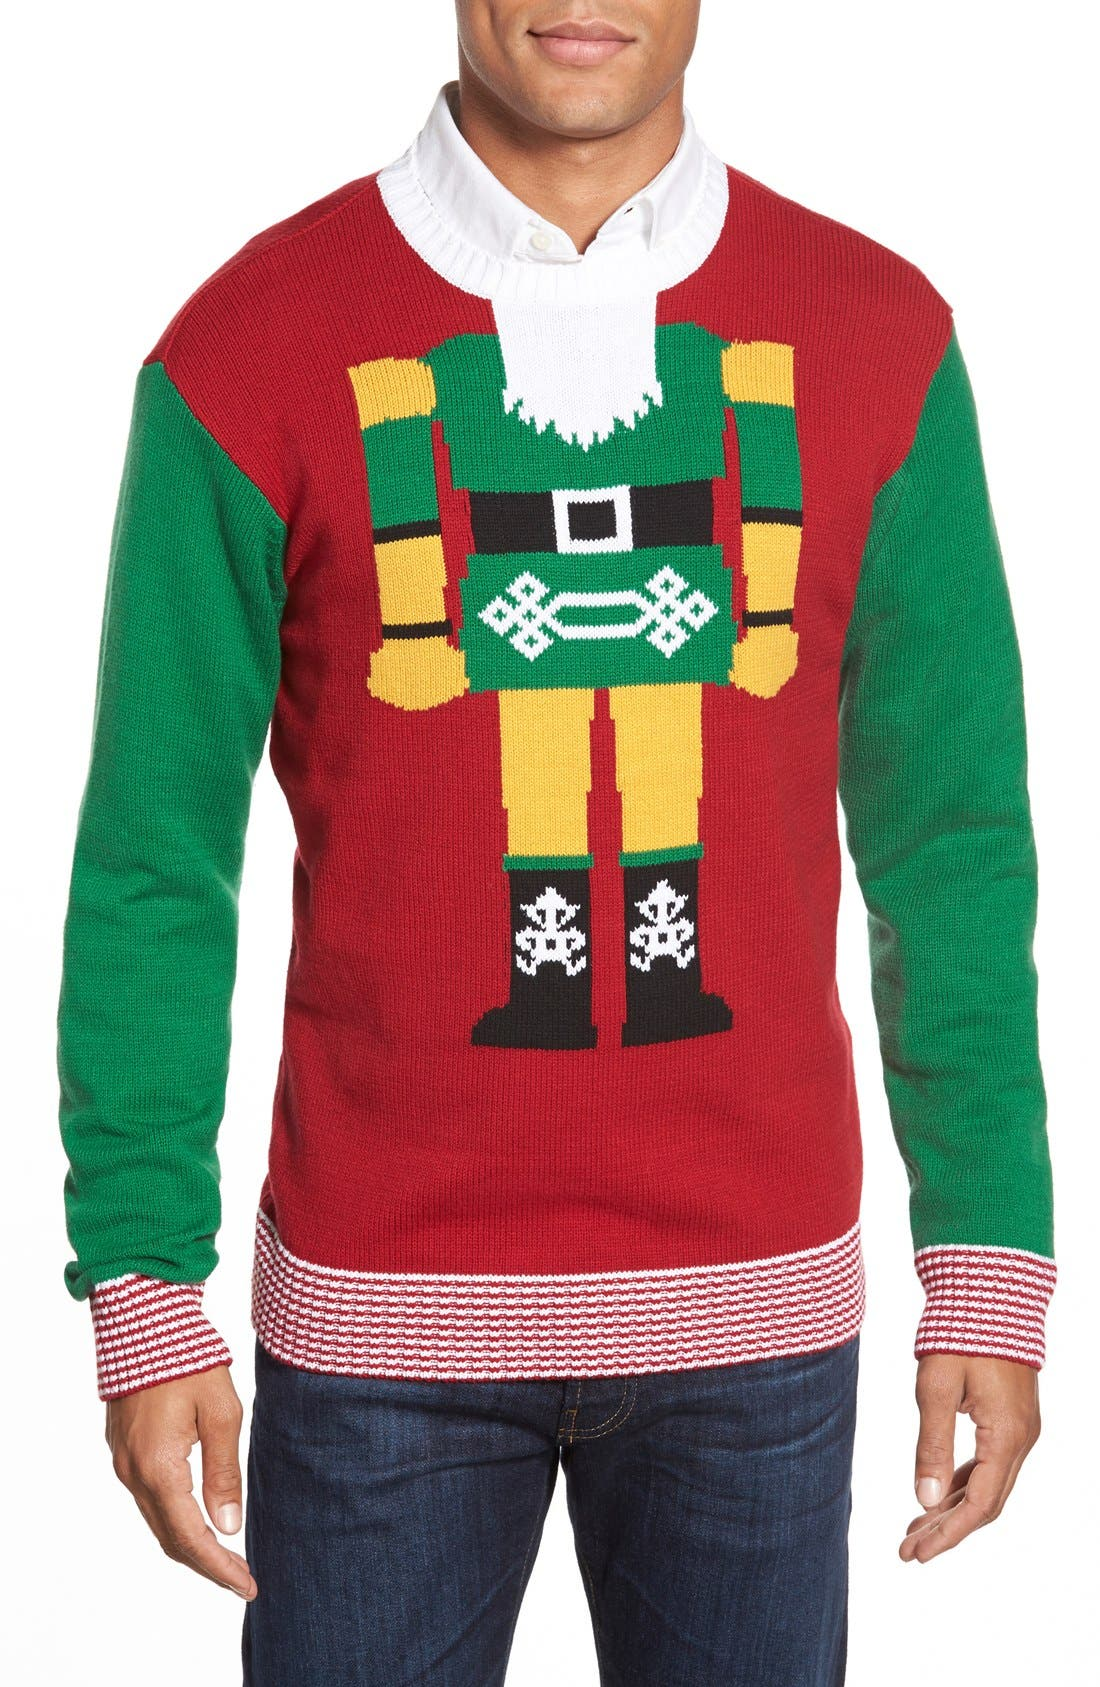 Alternate Image 1 Selected - Ugly Christmas Sweater 'Nutcracker Face' Holiday Crewneck Sweater